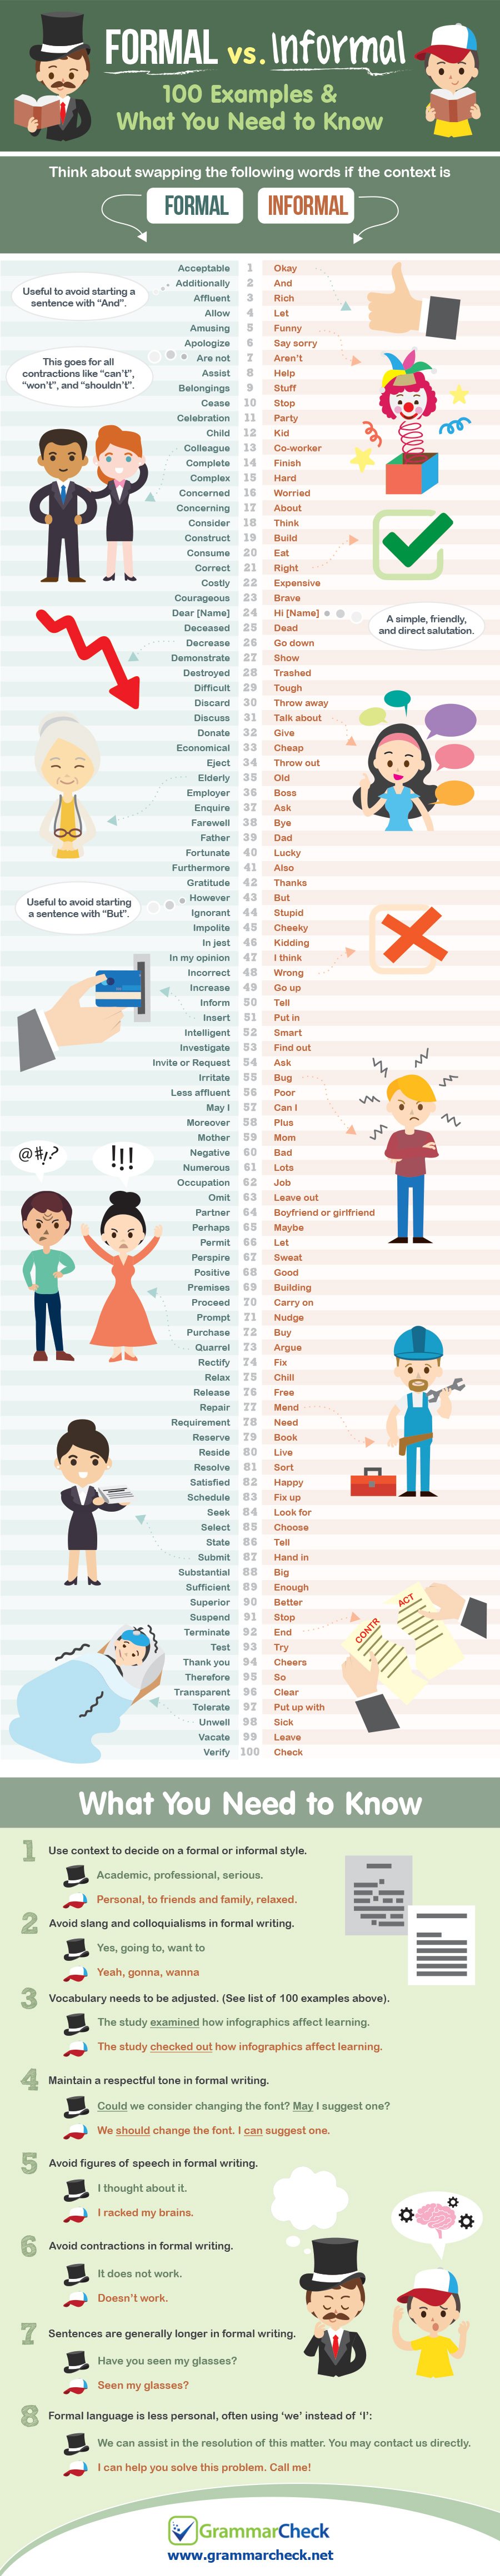 Formal vs. Informal: 100 Examples & What You Need to Know (Infographic)